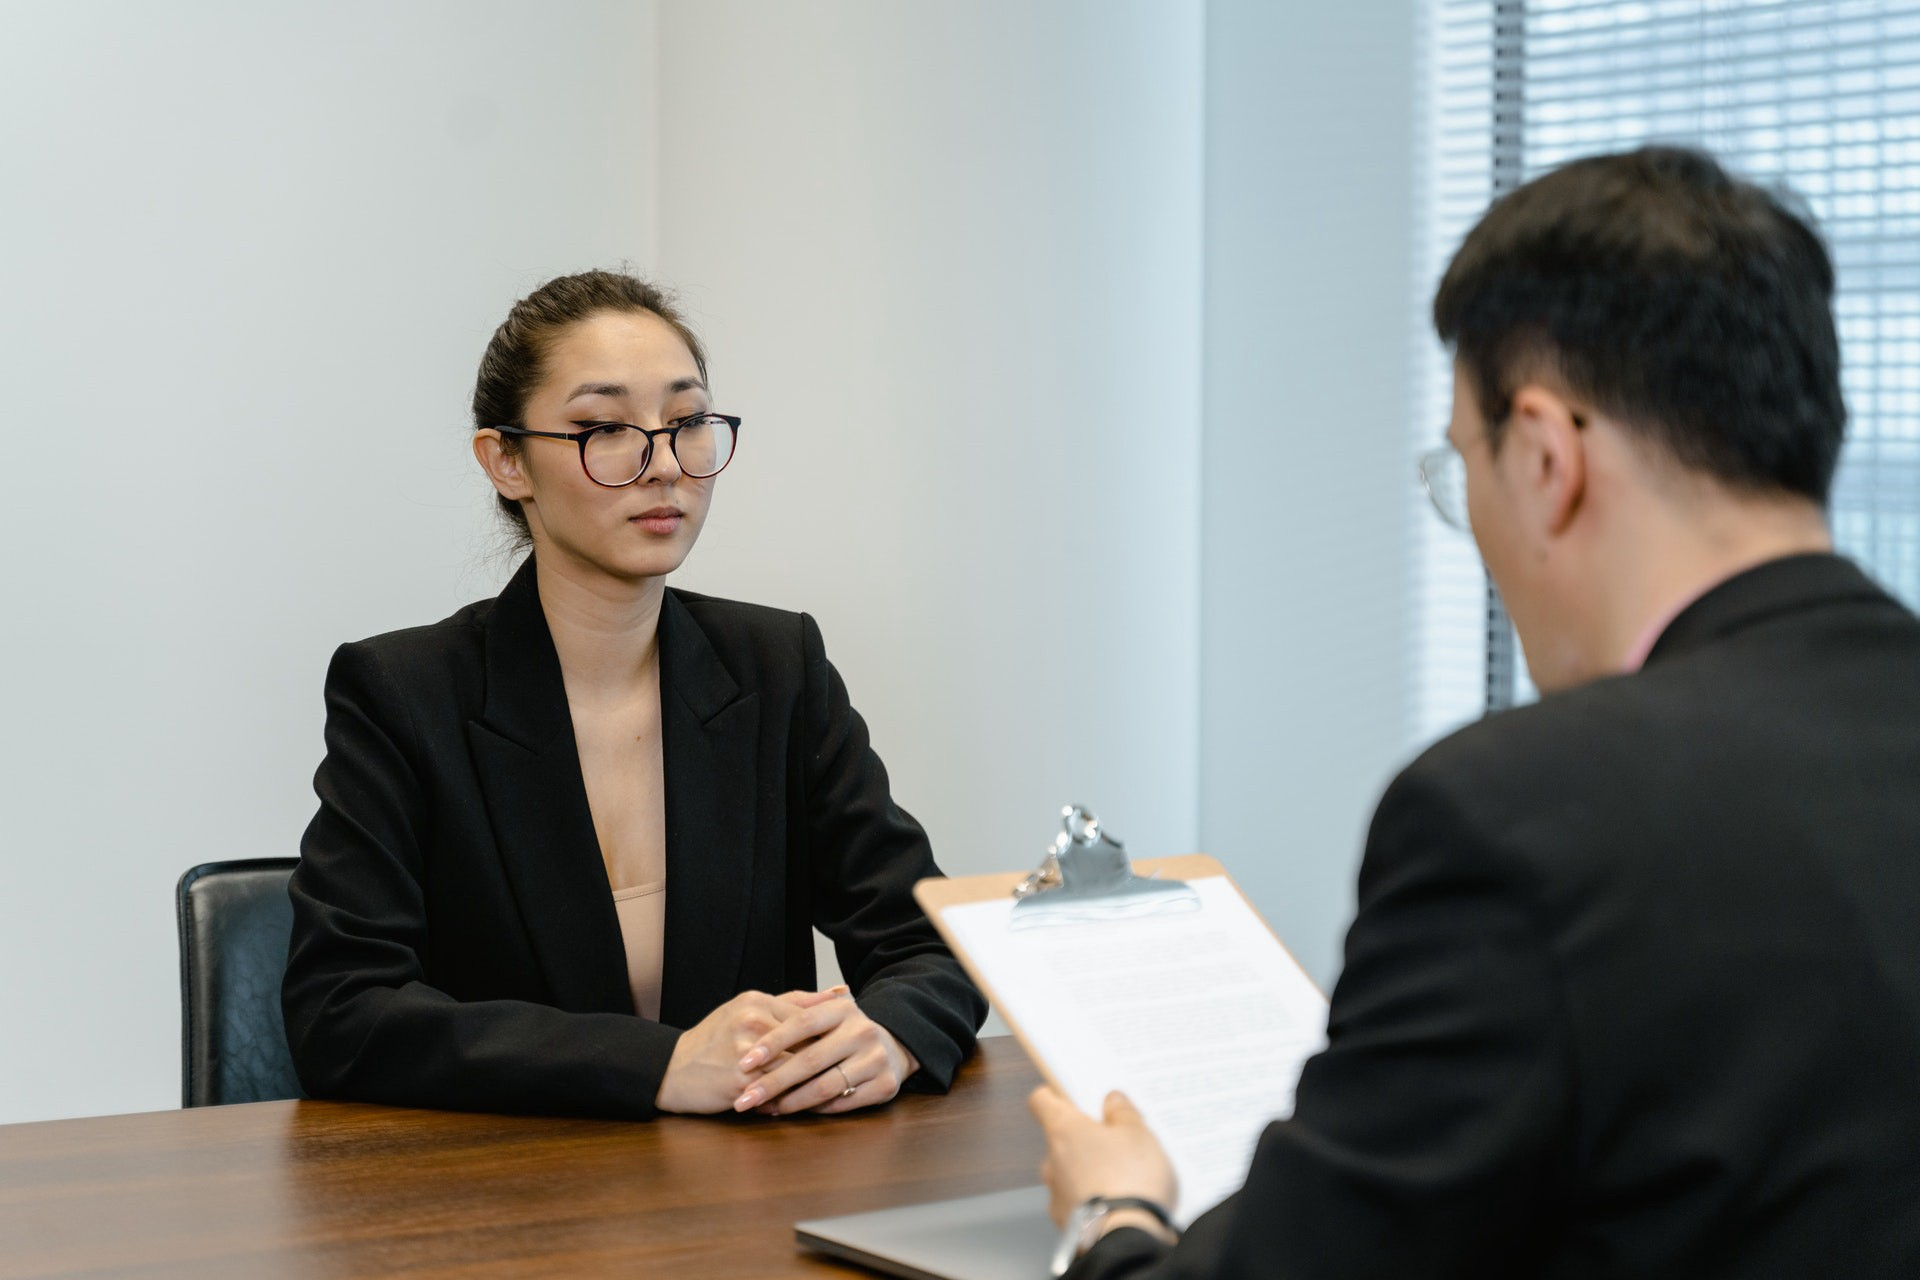 How to Show Confidence in an Interview